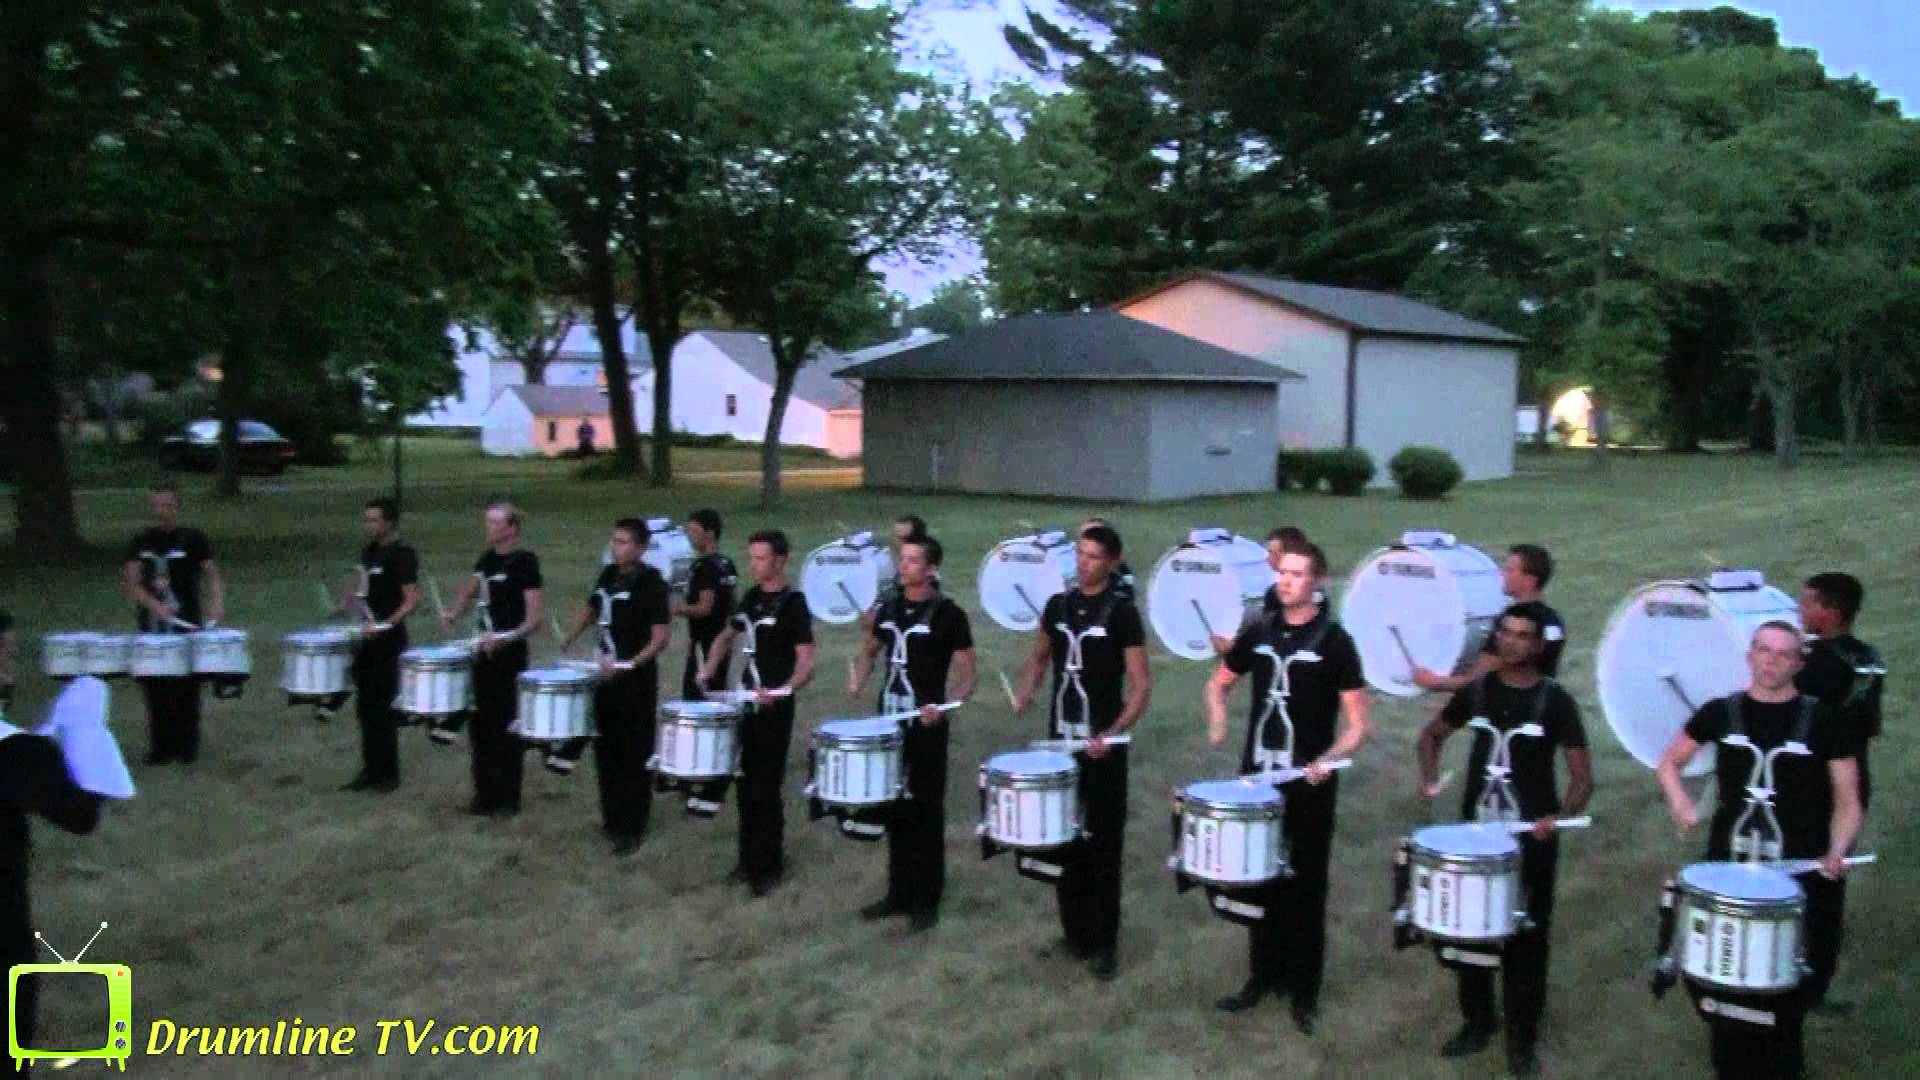 Cavaliers Drumline 2012 – Pageant of Drums Show – Michigan City, Indiana 6-30-2012